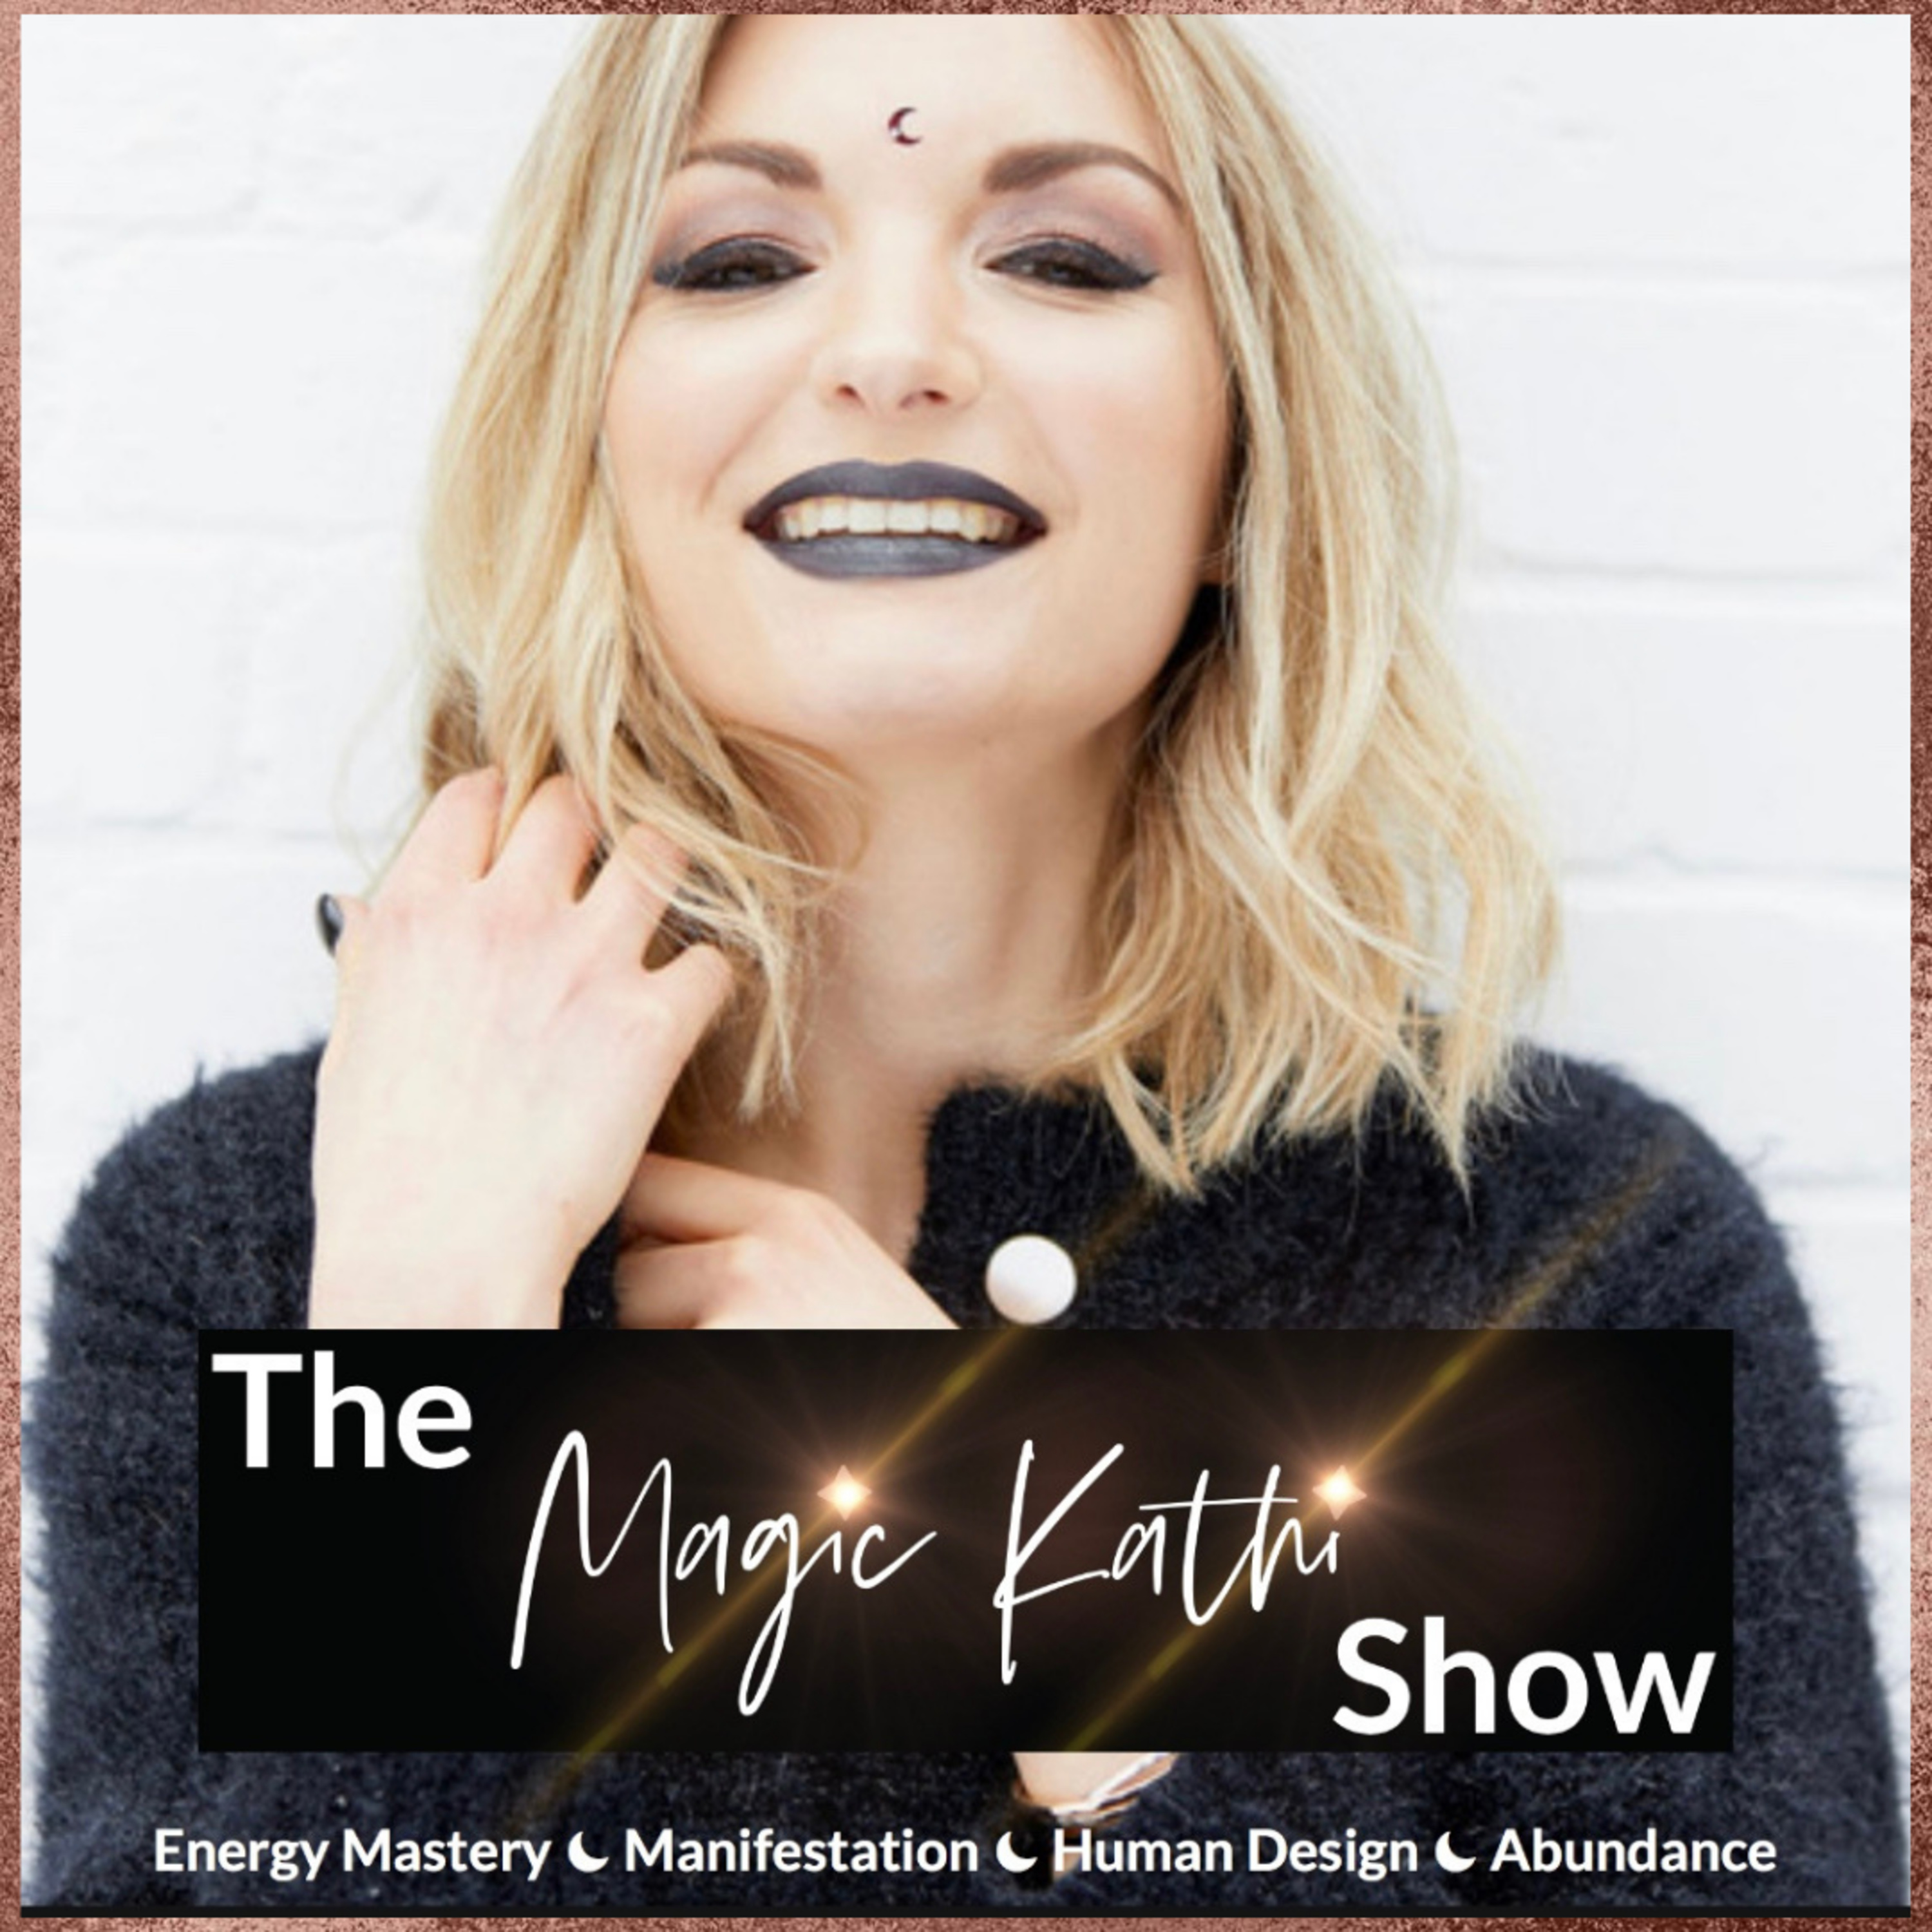 02 High Vibe Journaling Hack That Will Shift Your Energy Instantly Success Mindset Energy Mastery The Magic Kathi Show Podcast Podtail